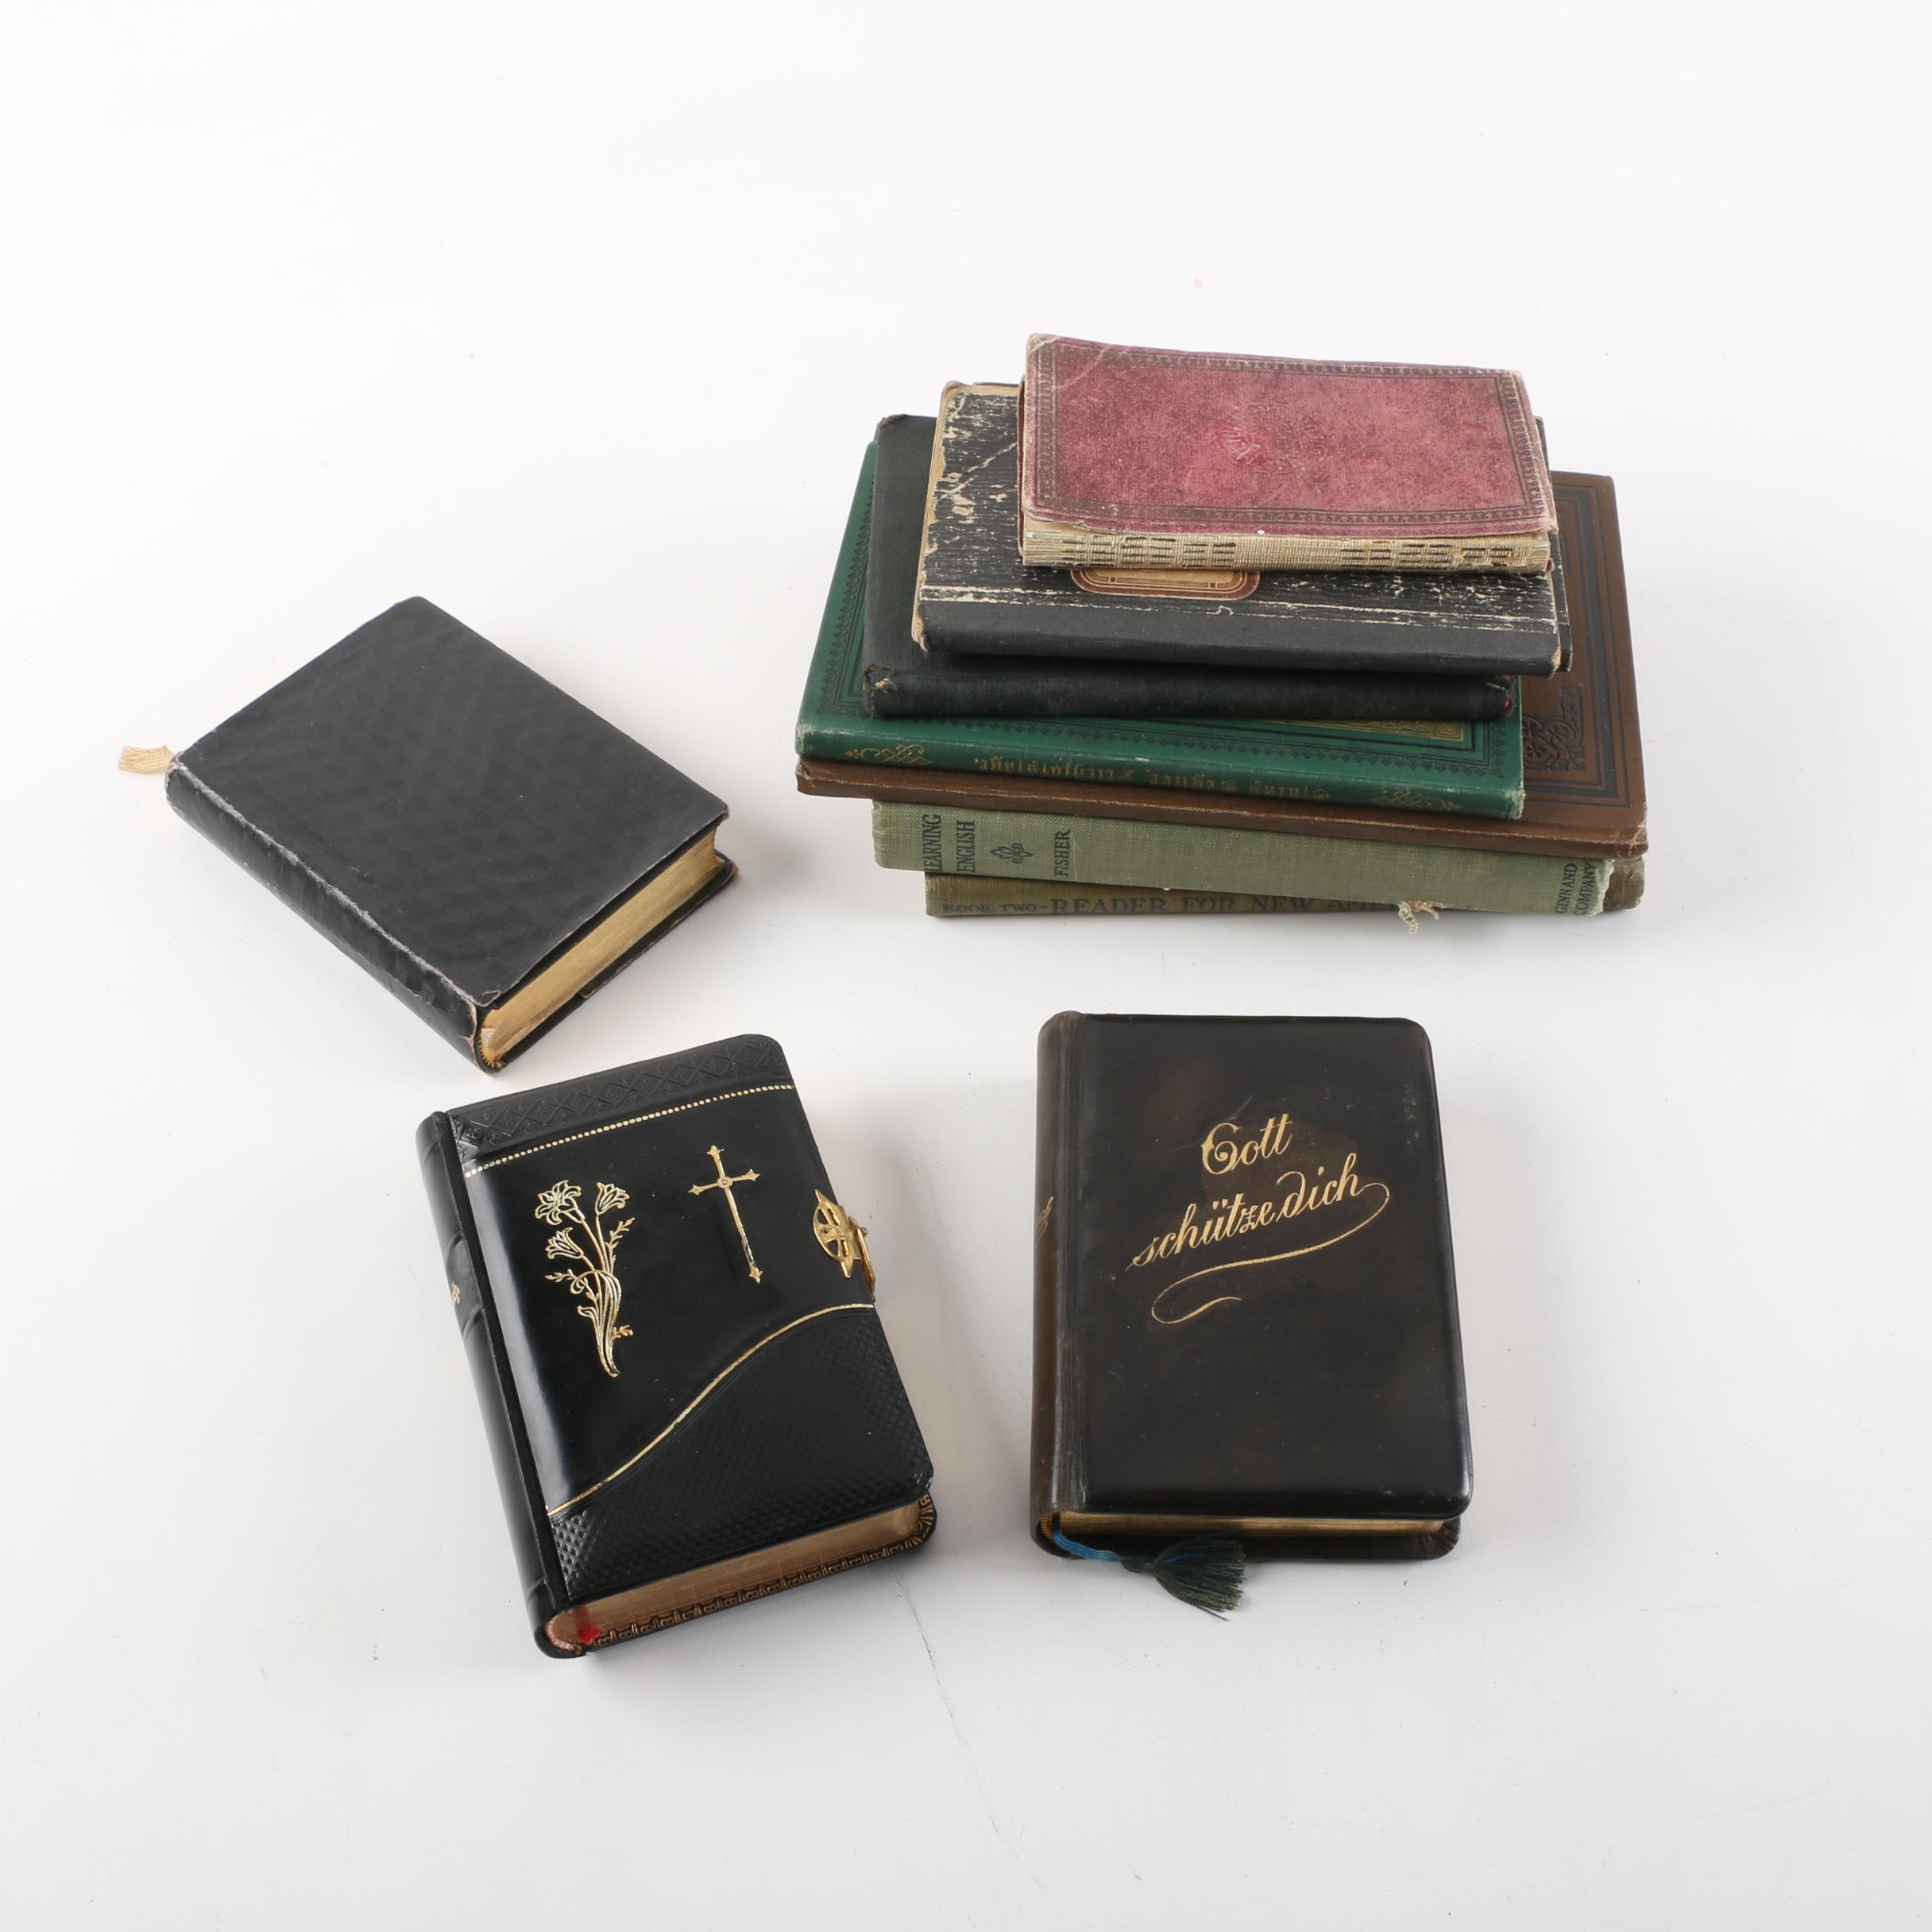 Selection of Foreign Language Bibles and Books